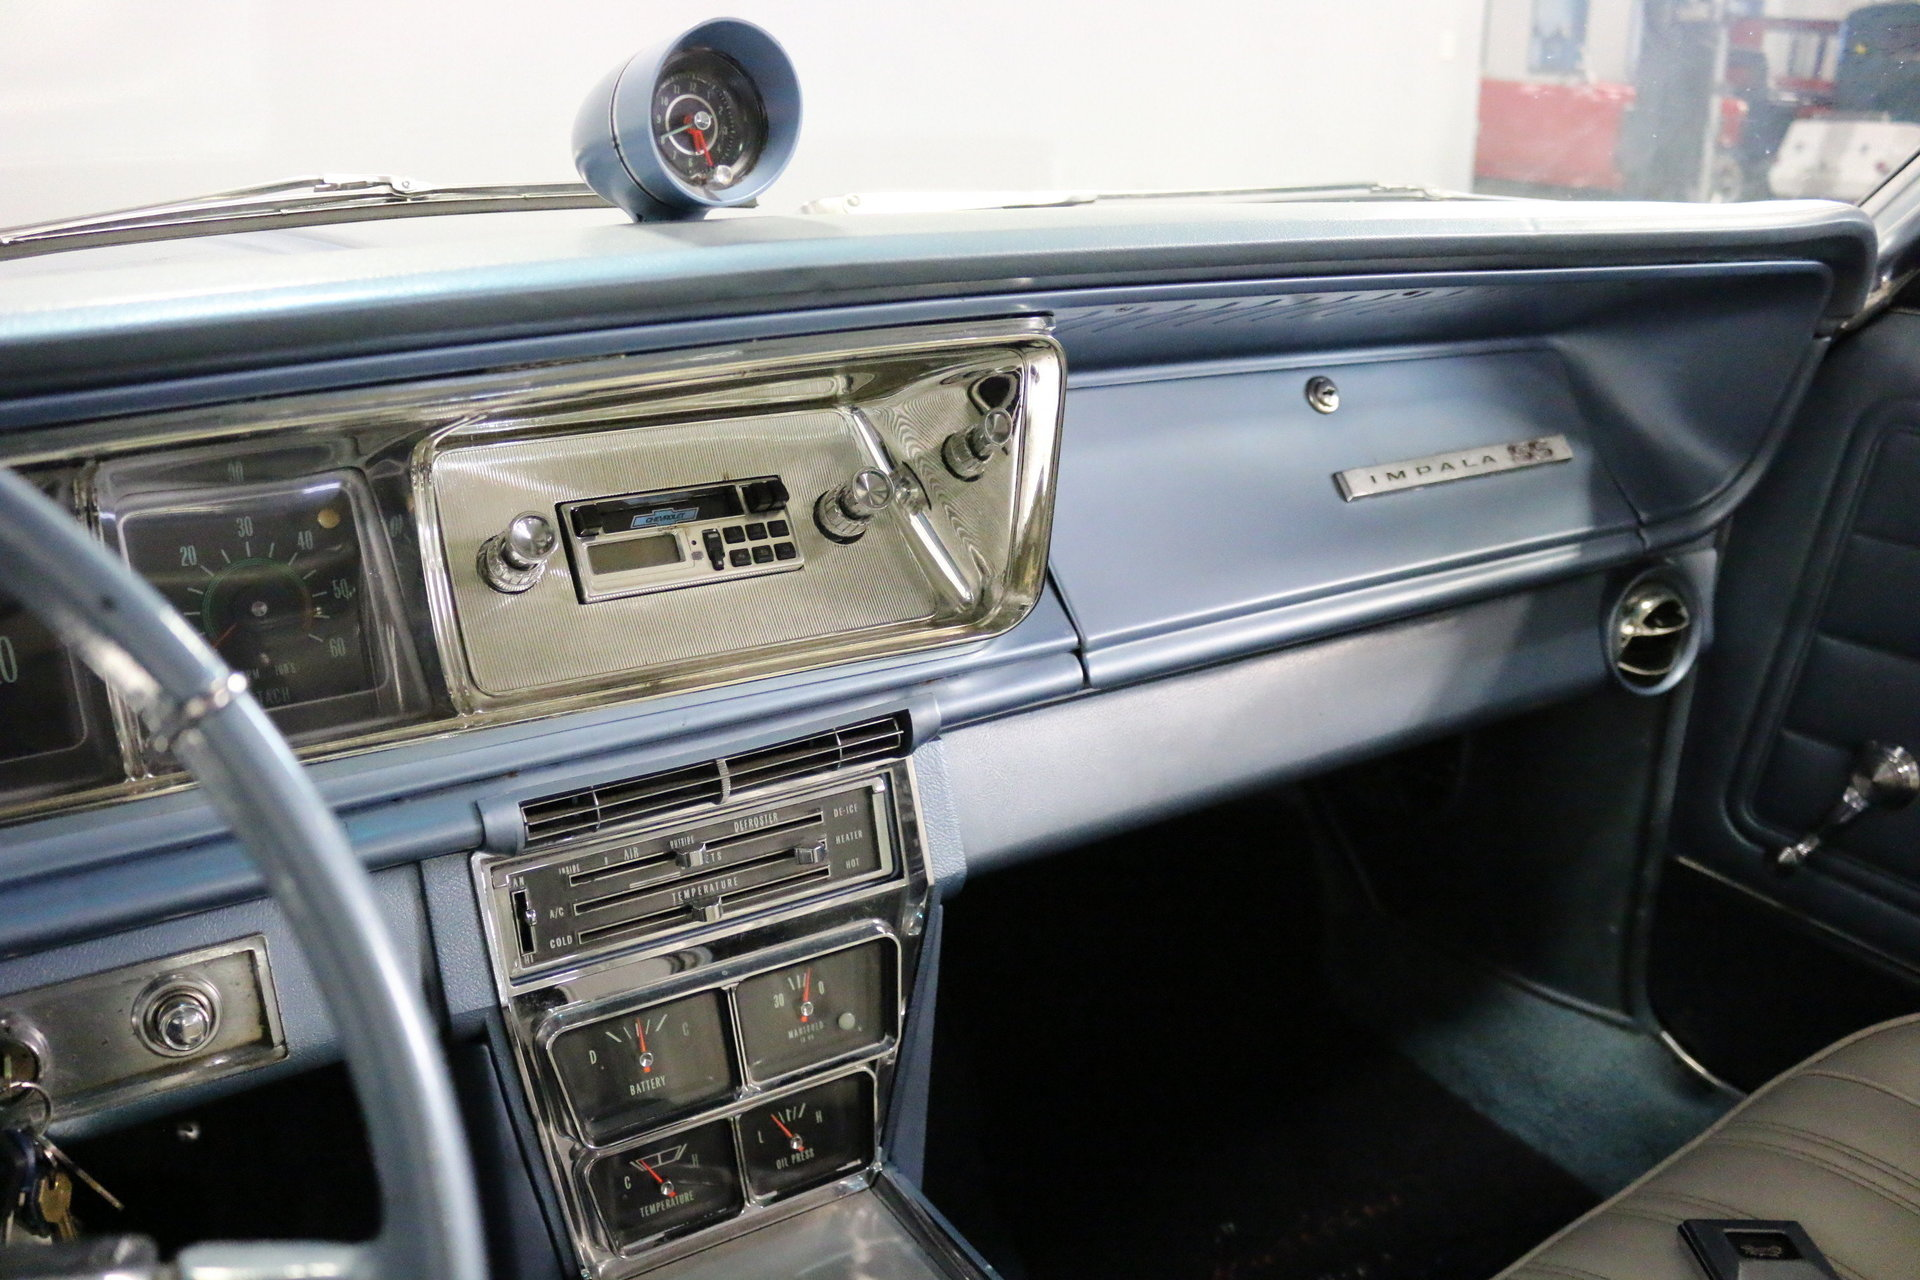 1966 Chevrolet Impala Streetside Classics The Nations Trusted Chevy 2 Door Show More Photos